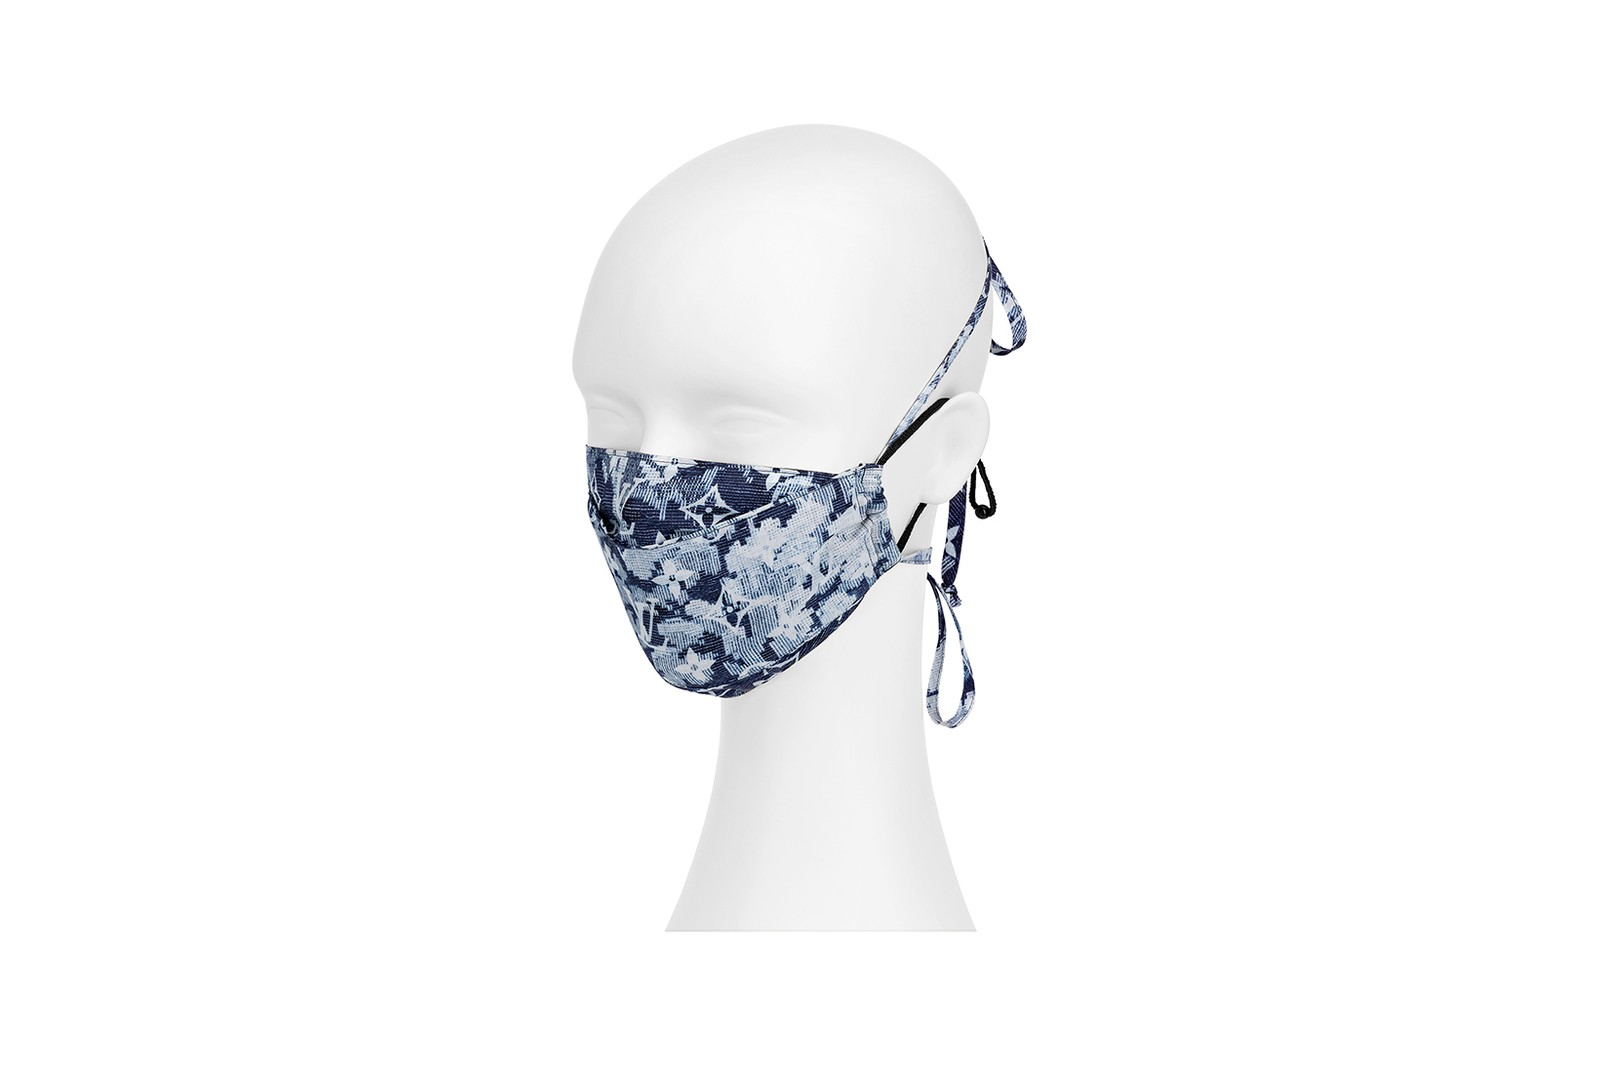 best face masks reusable washable sustainable louis vuitton wired vivienne westwood